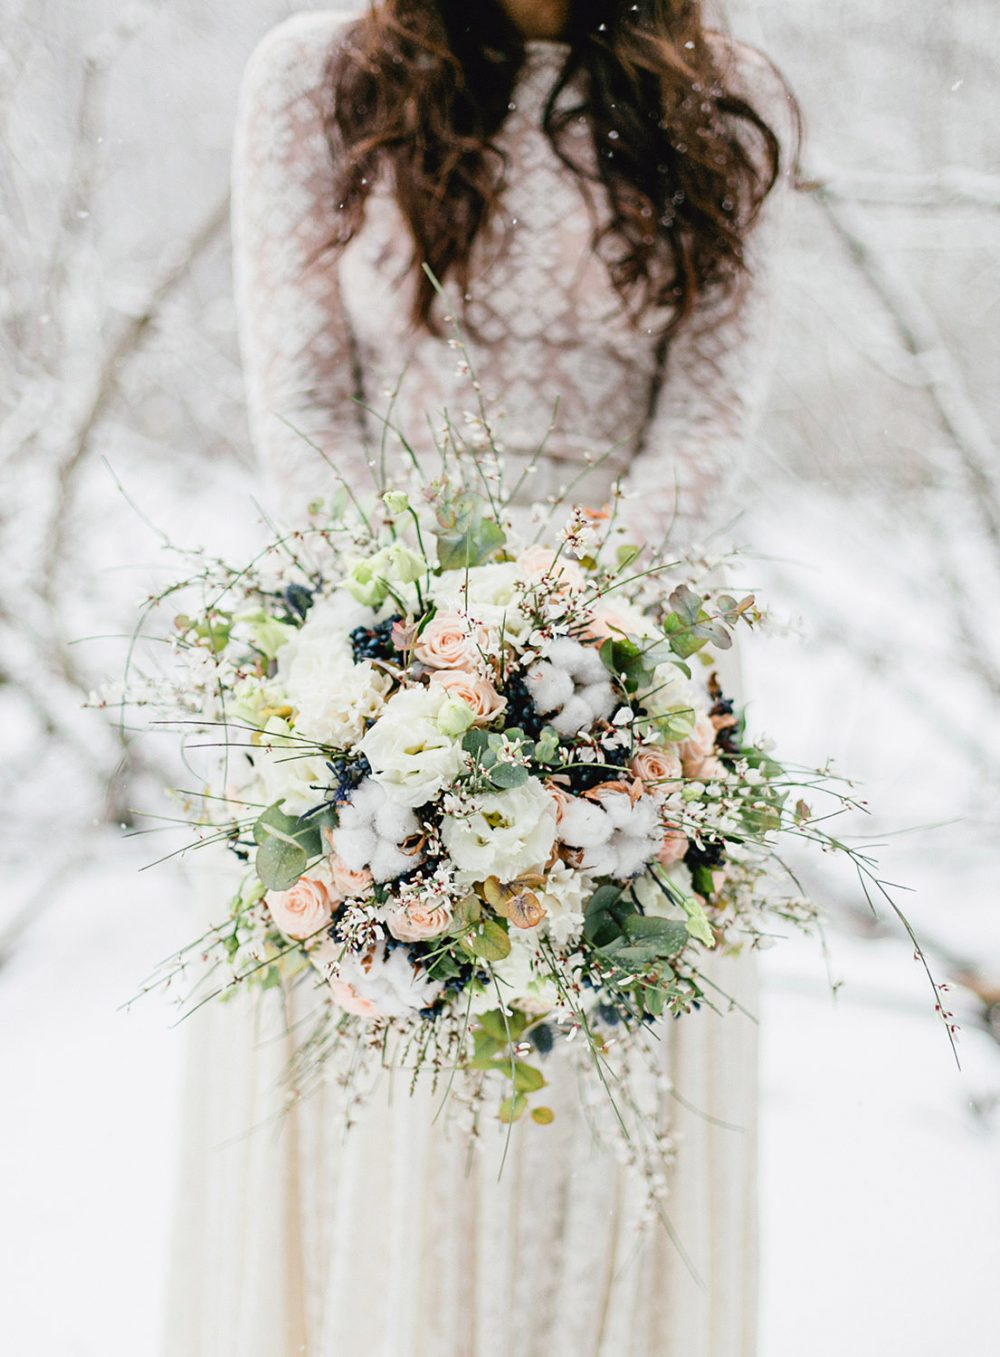 Tabea Maria-Lisa TML Winterhochzeit Brautstrauss Winter Hochzeitsblumen Wedding Flowers Switzerland Swiss Elopement